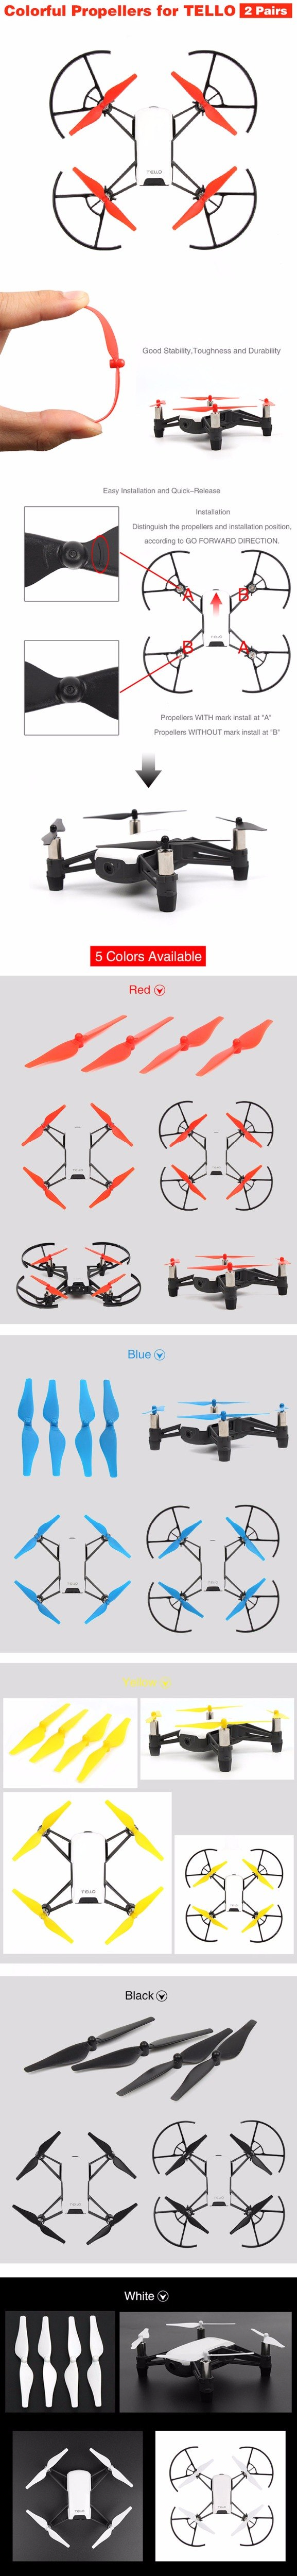 4pcs Quick Release/Lock Propellers CCW CW Props Blades For DJI Tello Mini  Drone (white/black/red/yellow/blue) Singapore